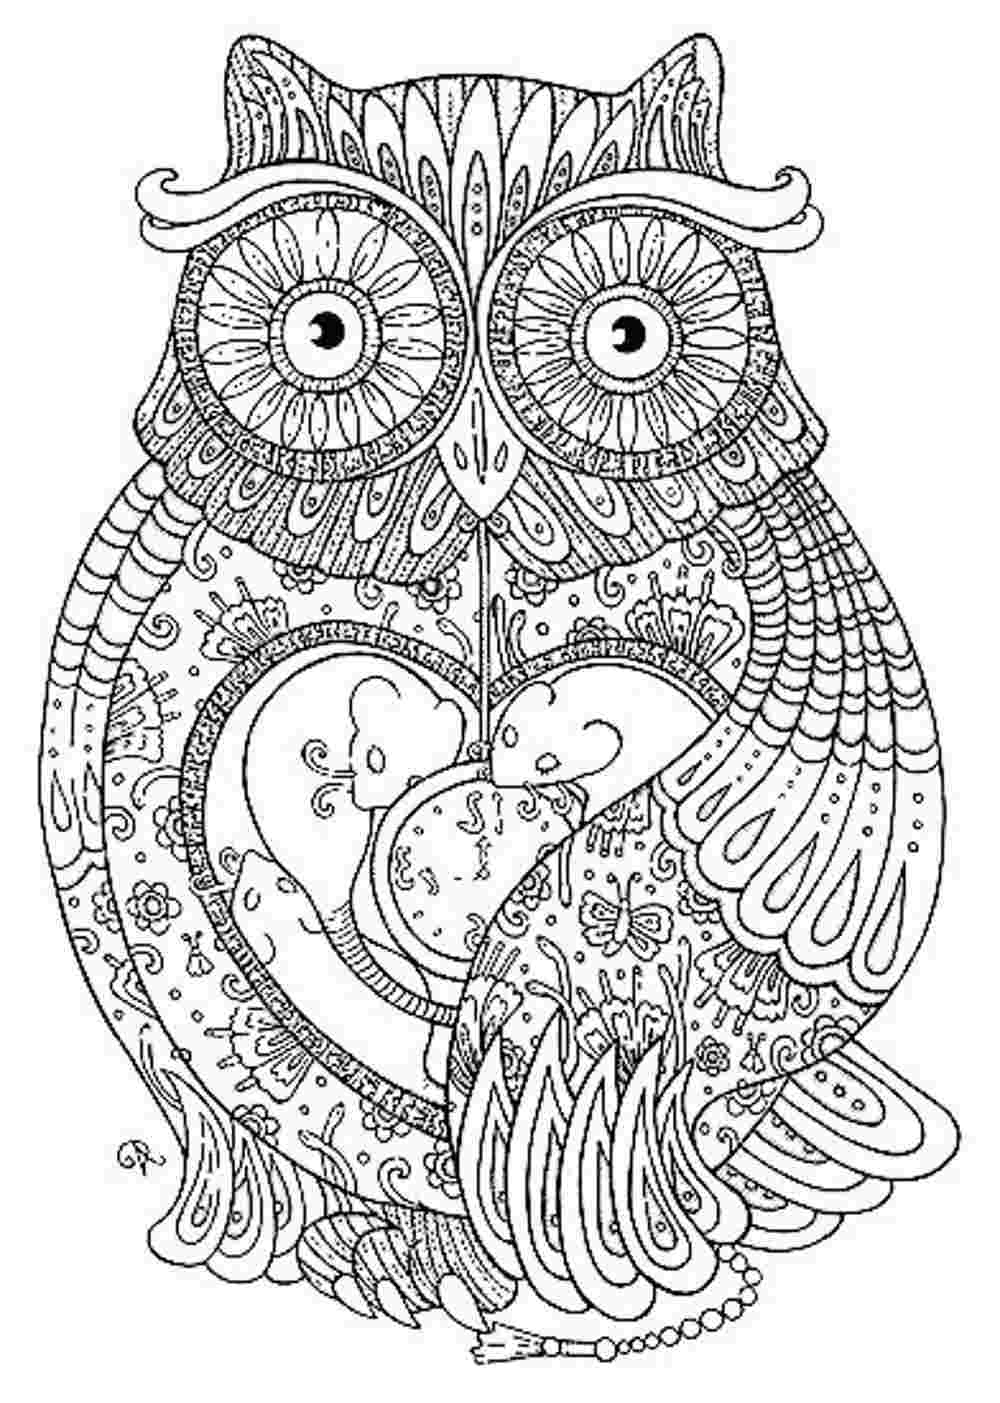 Animal mandala coloring pages to download and print for free | mandala coloring pages for adults animals